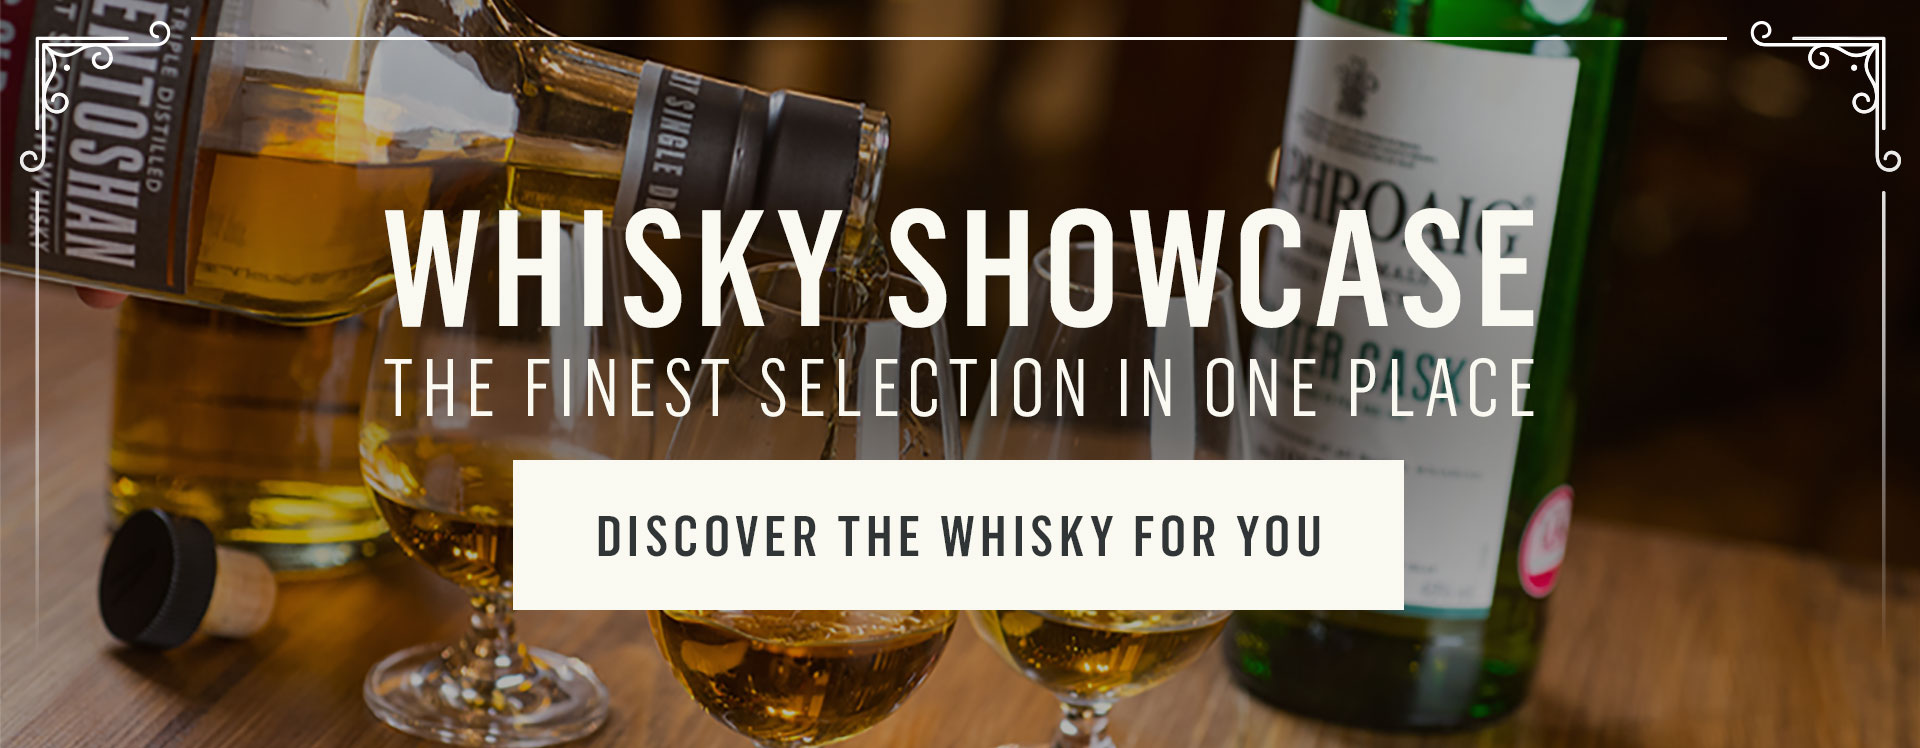 Whisky Showcase at Harkers in York